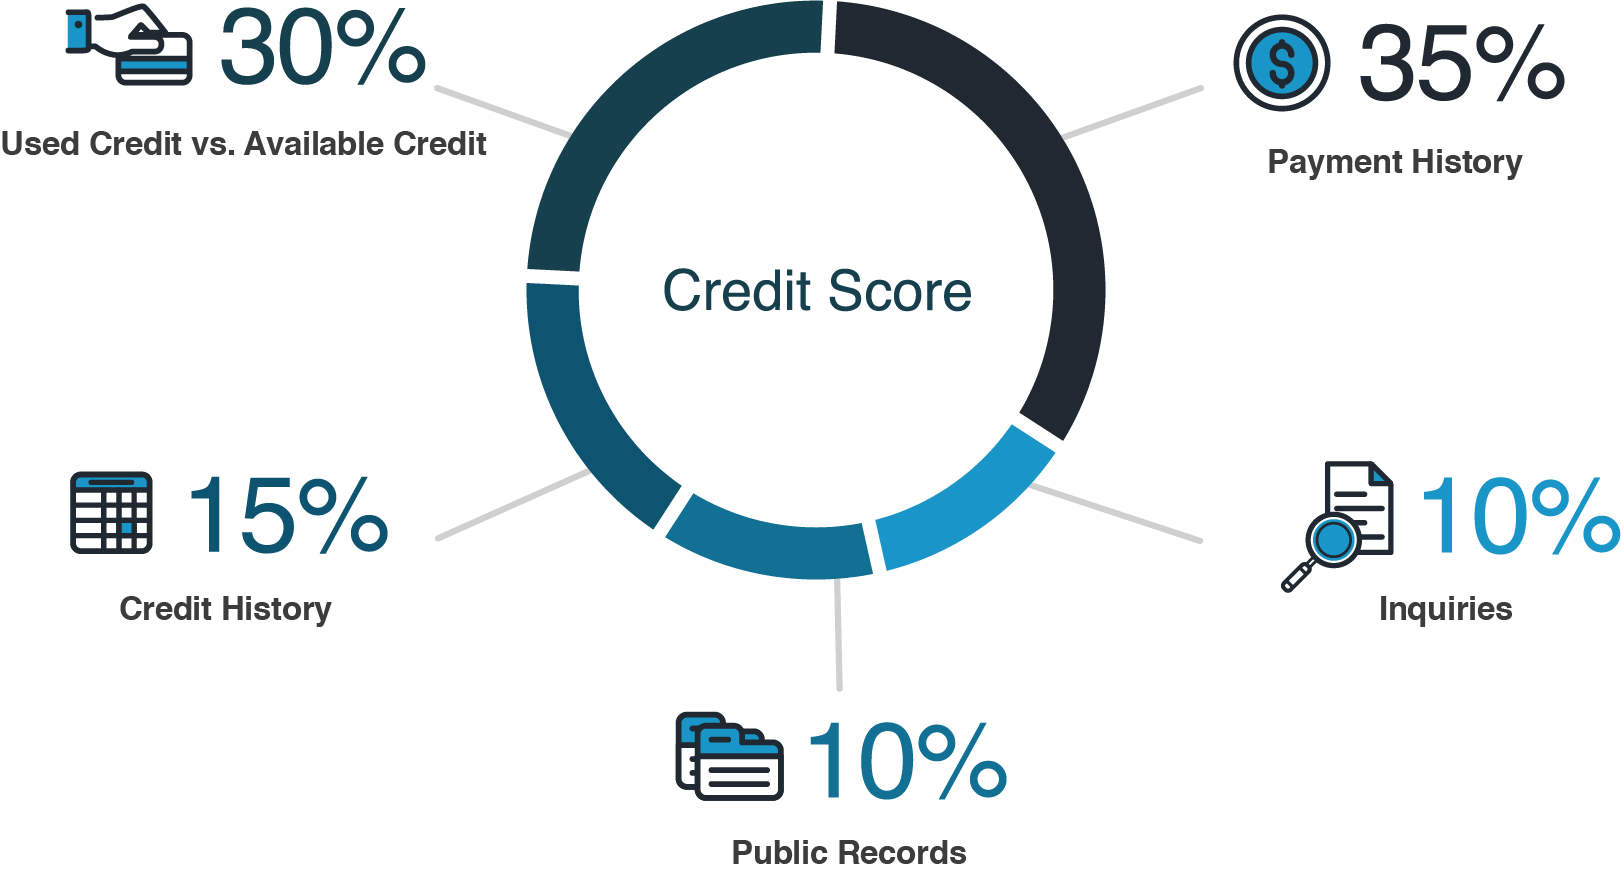 Factors in a Credit Score